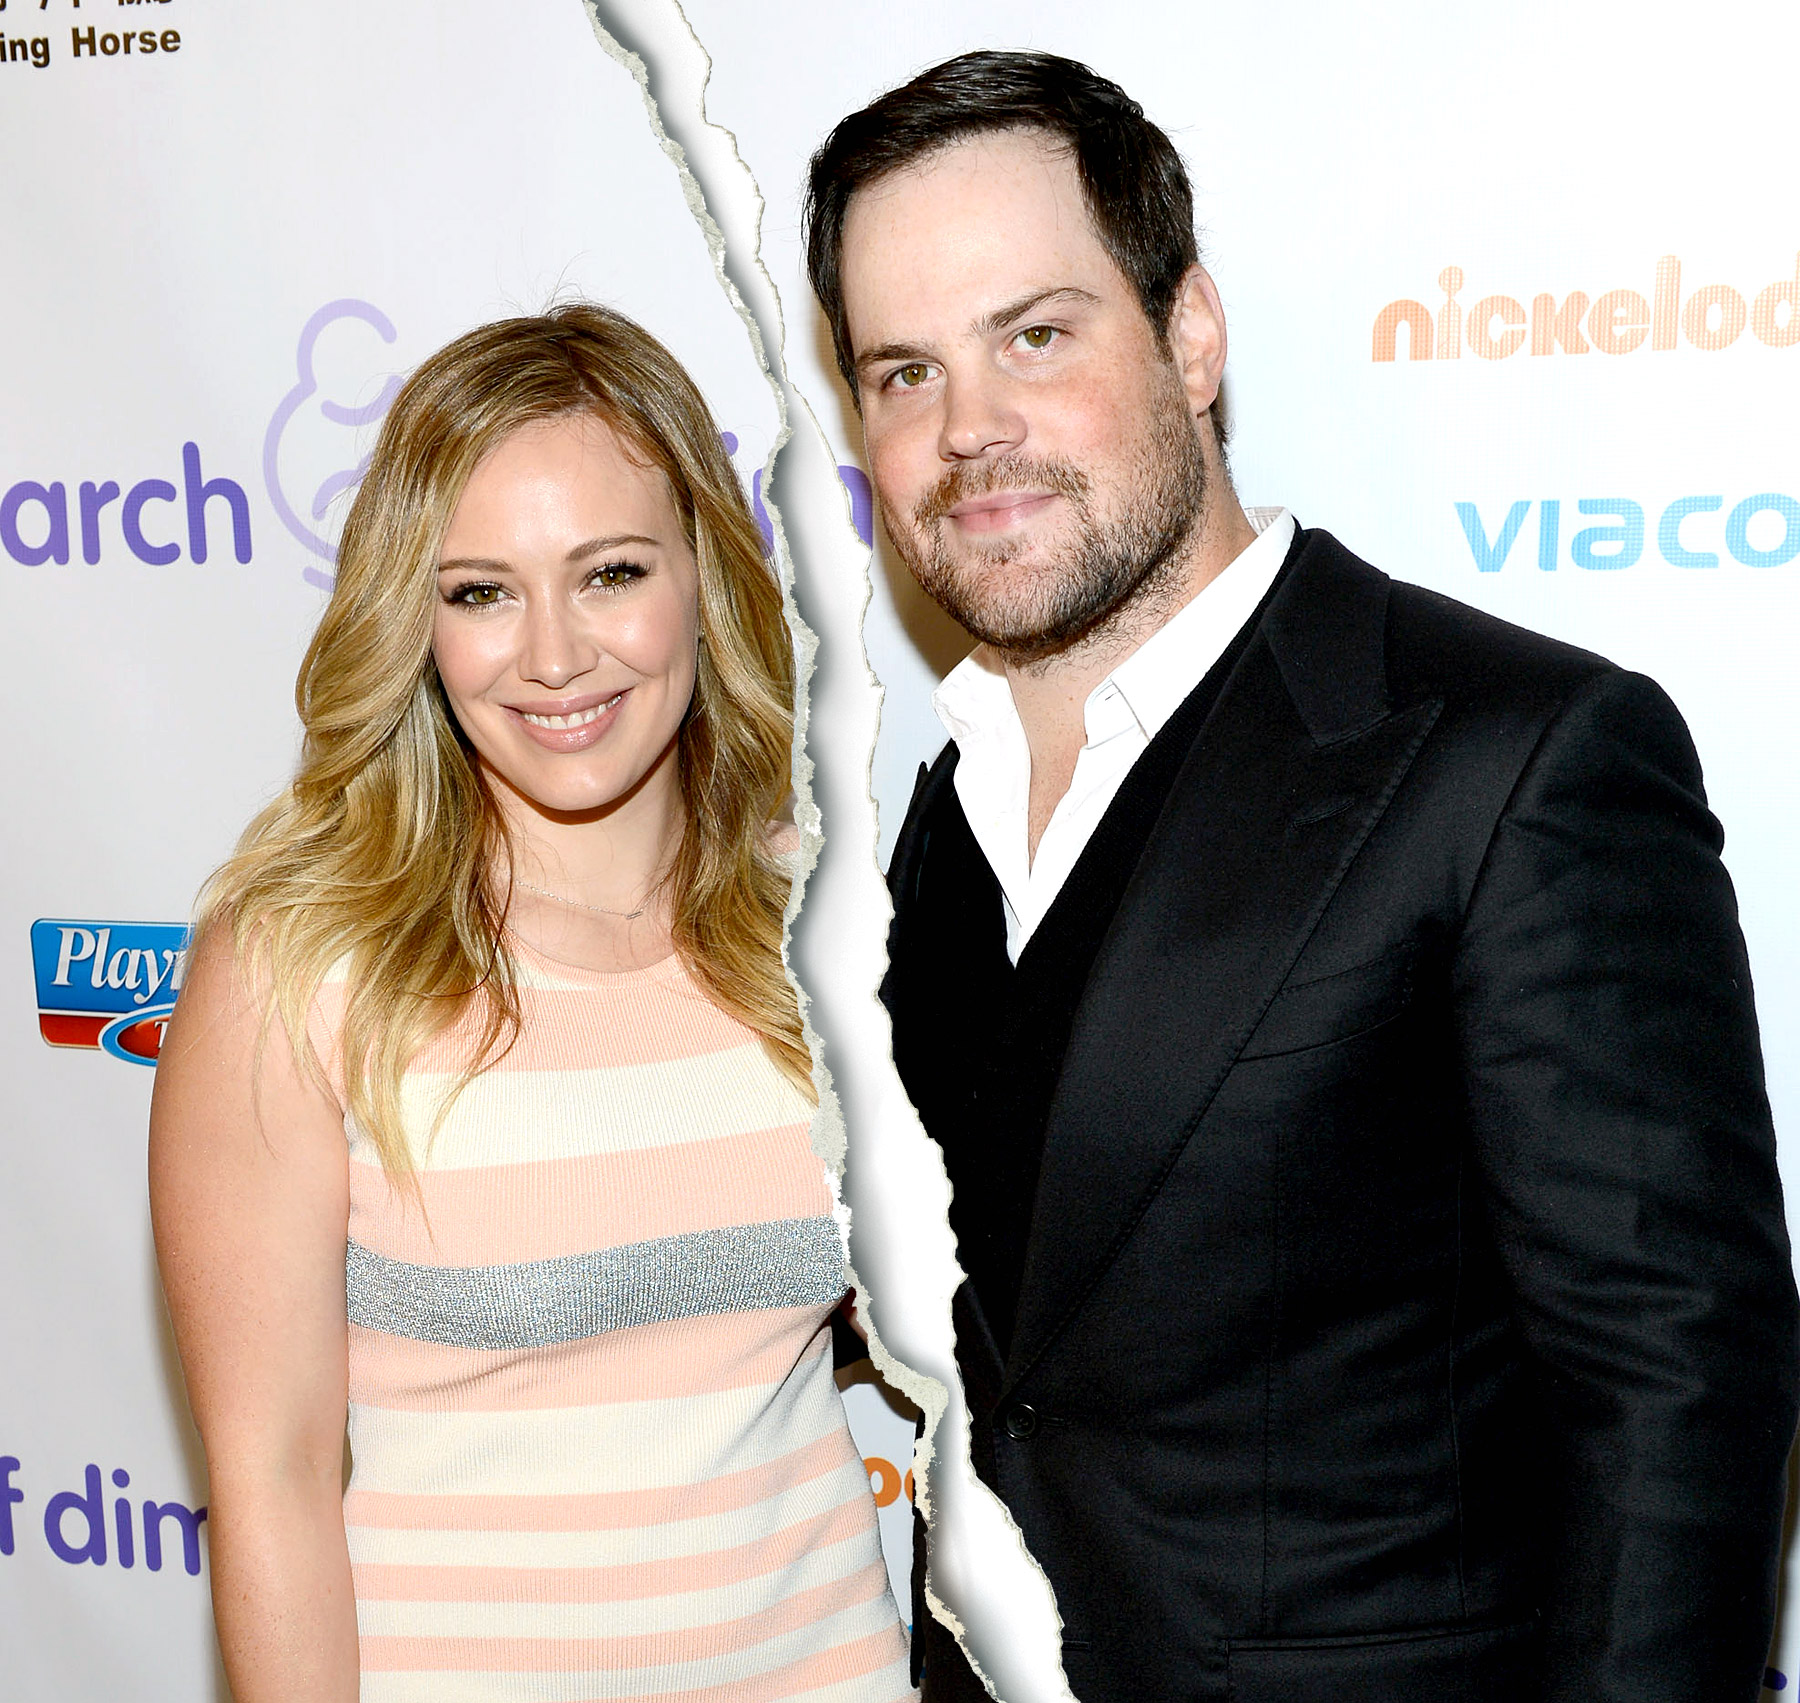 Hilary Duff Files For Divorce From Estranged Husband Mike Comrie After Hockey Pro Has Alleged Drunk Night Out